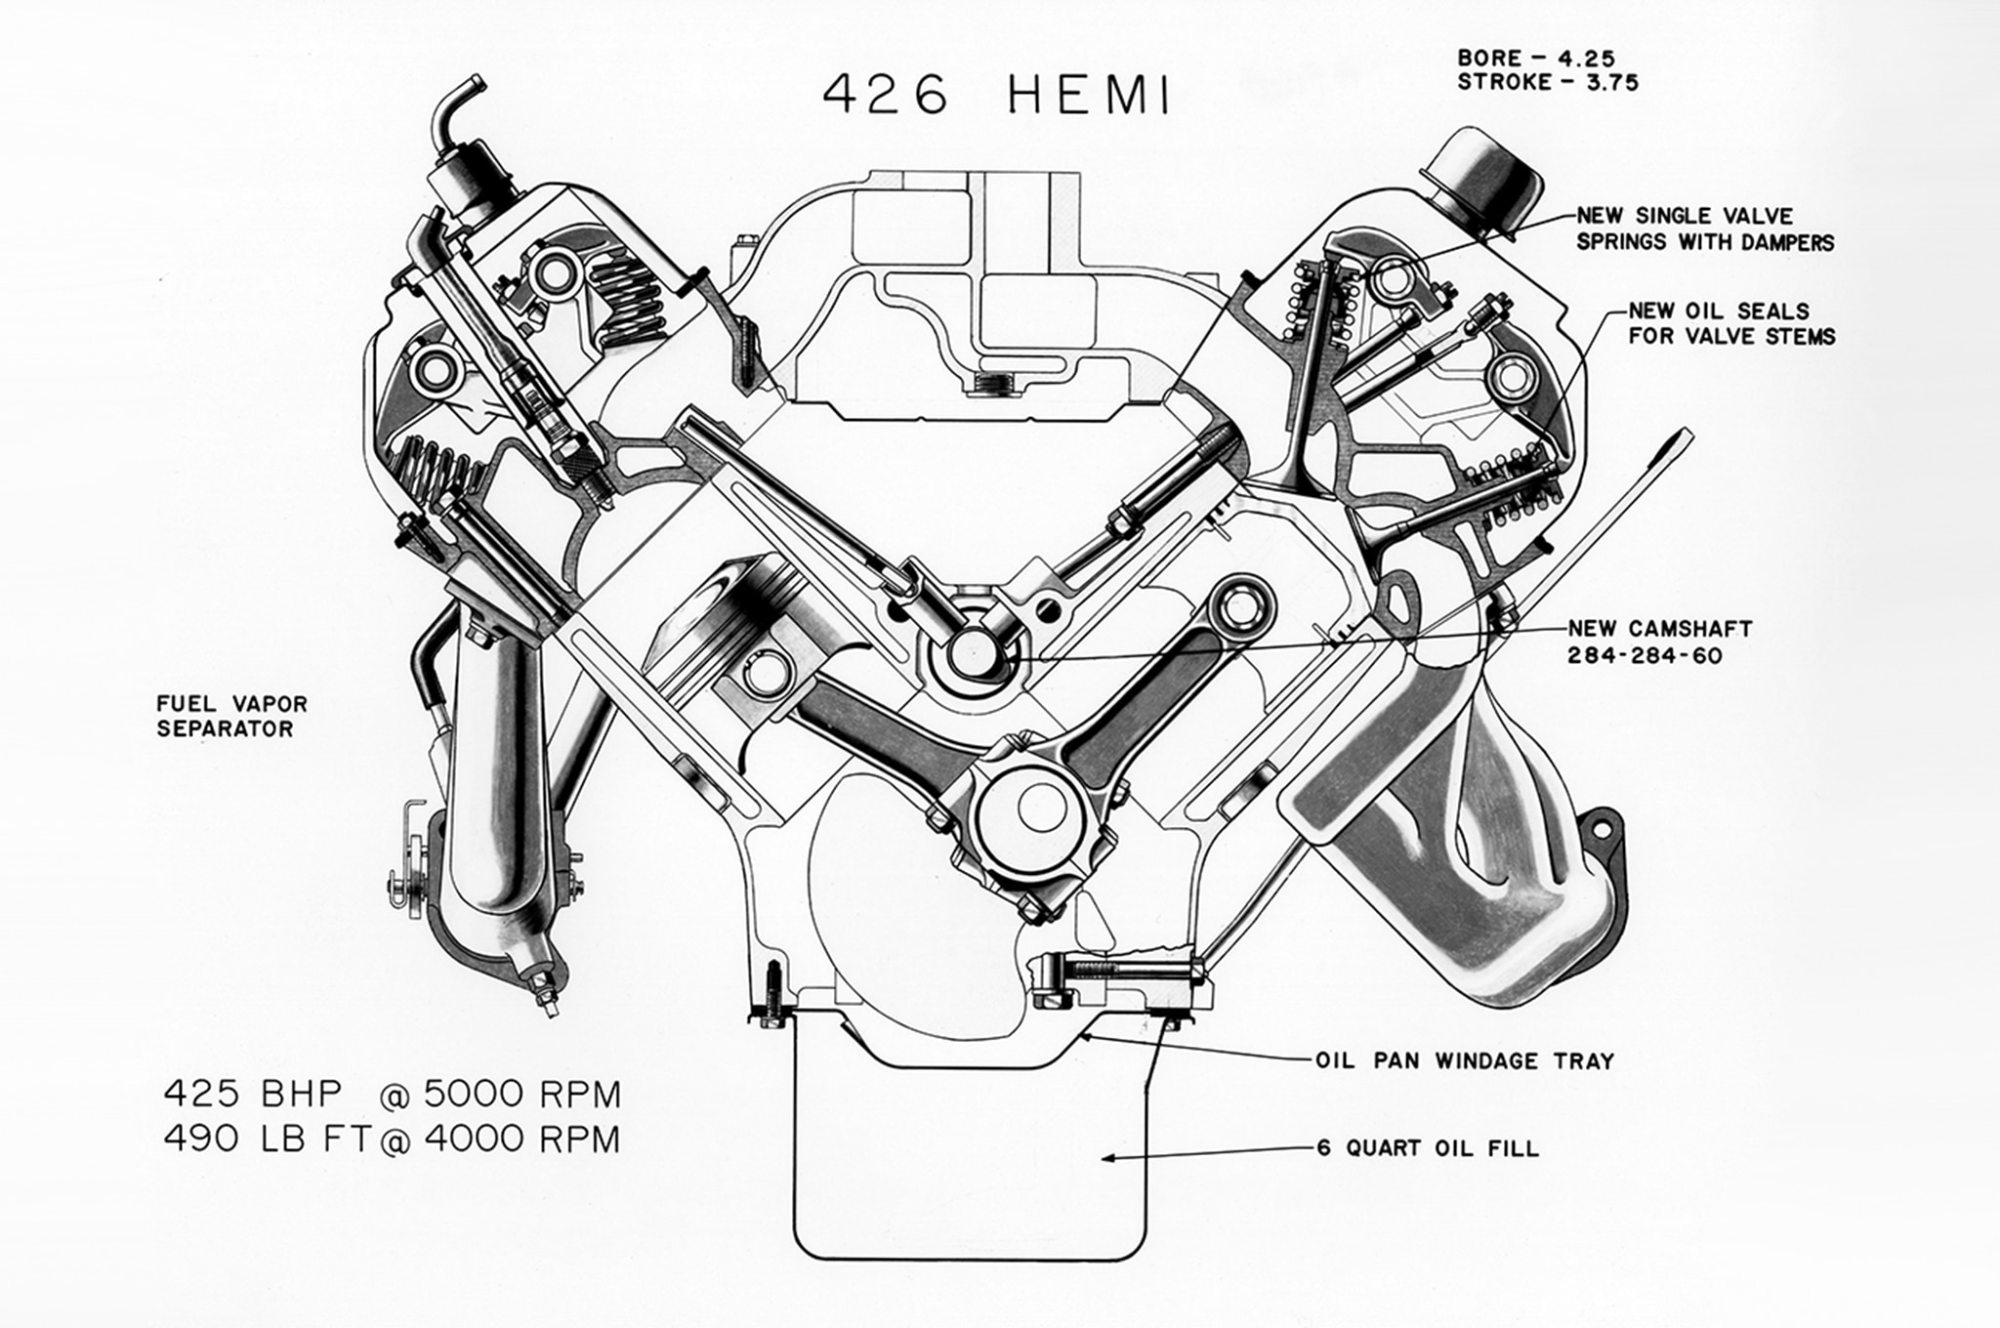 hight resolution of 1970 dodge magnum engine diagram wiring diagram yer 1970 hemi engine diagram